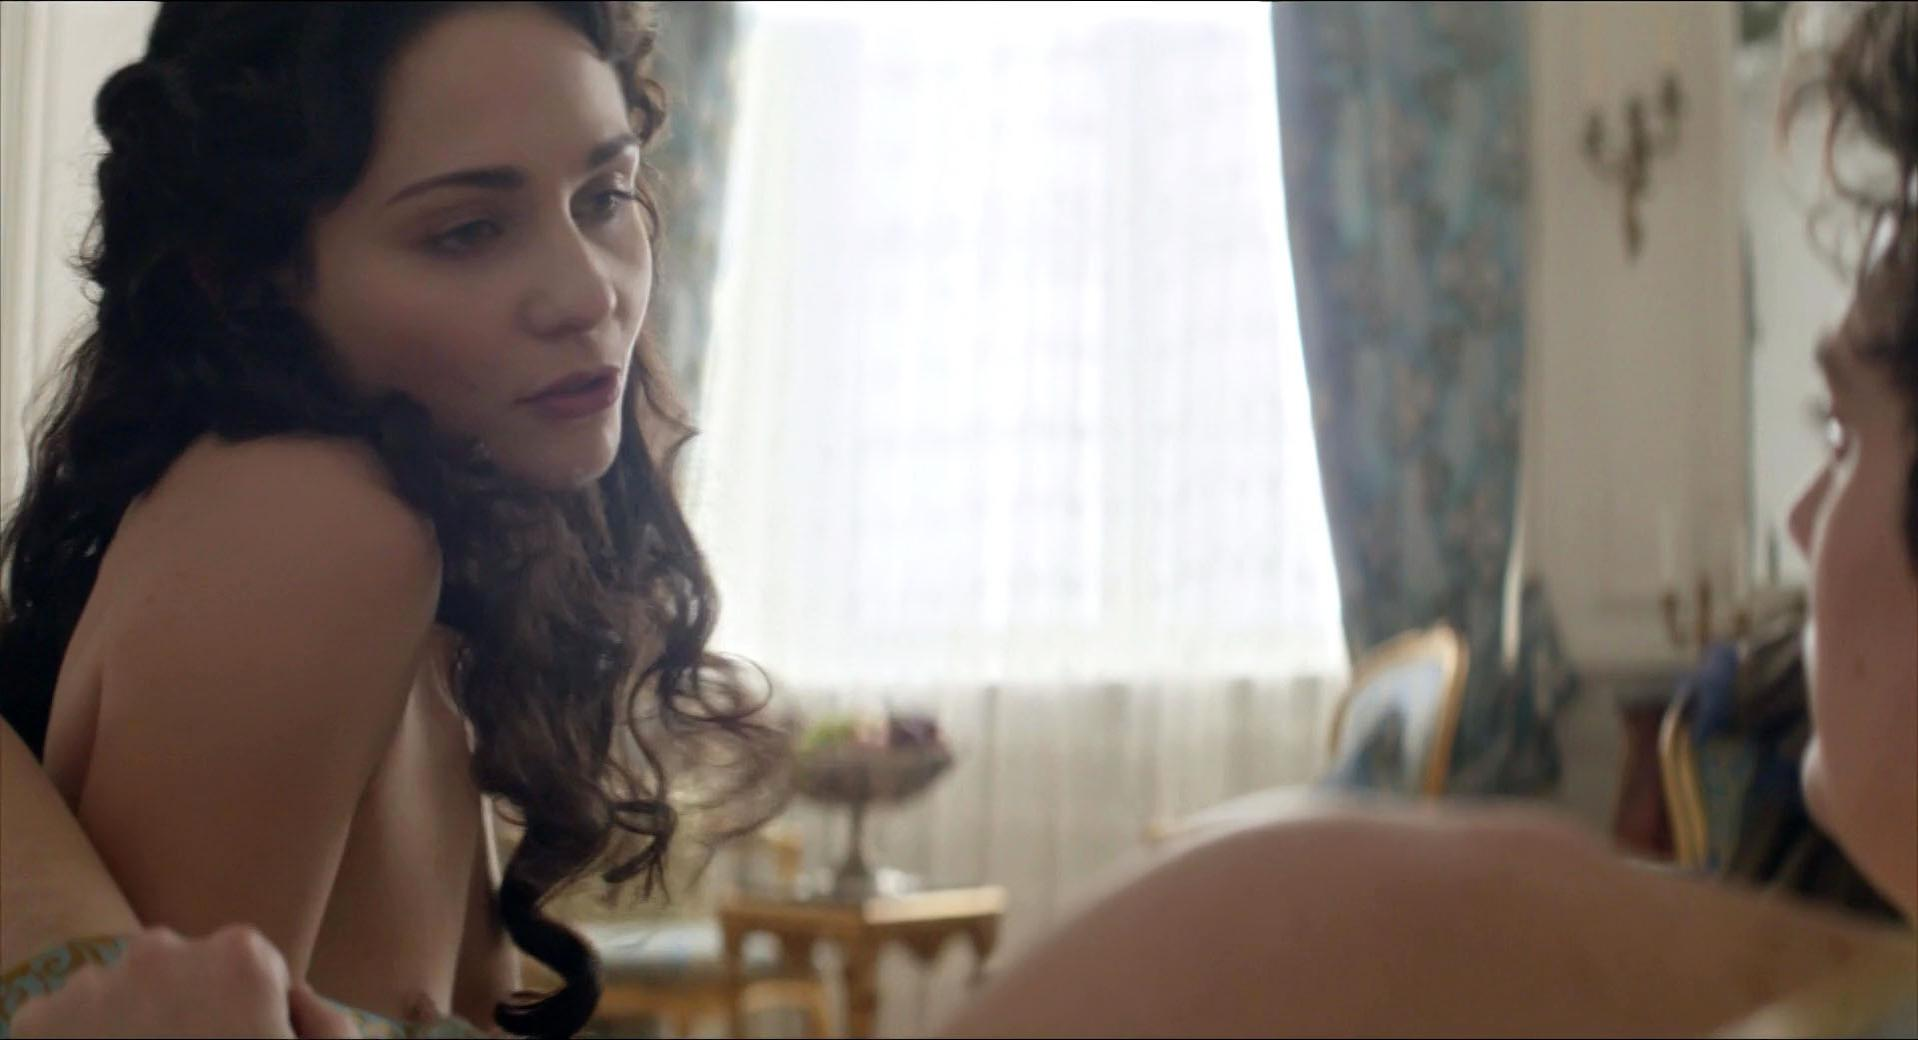 Nude video celebs » Tuppence Middleton nude - War and Peace ...